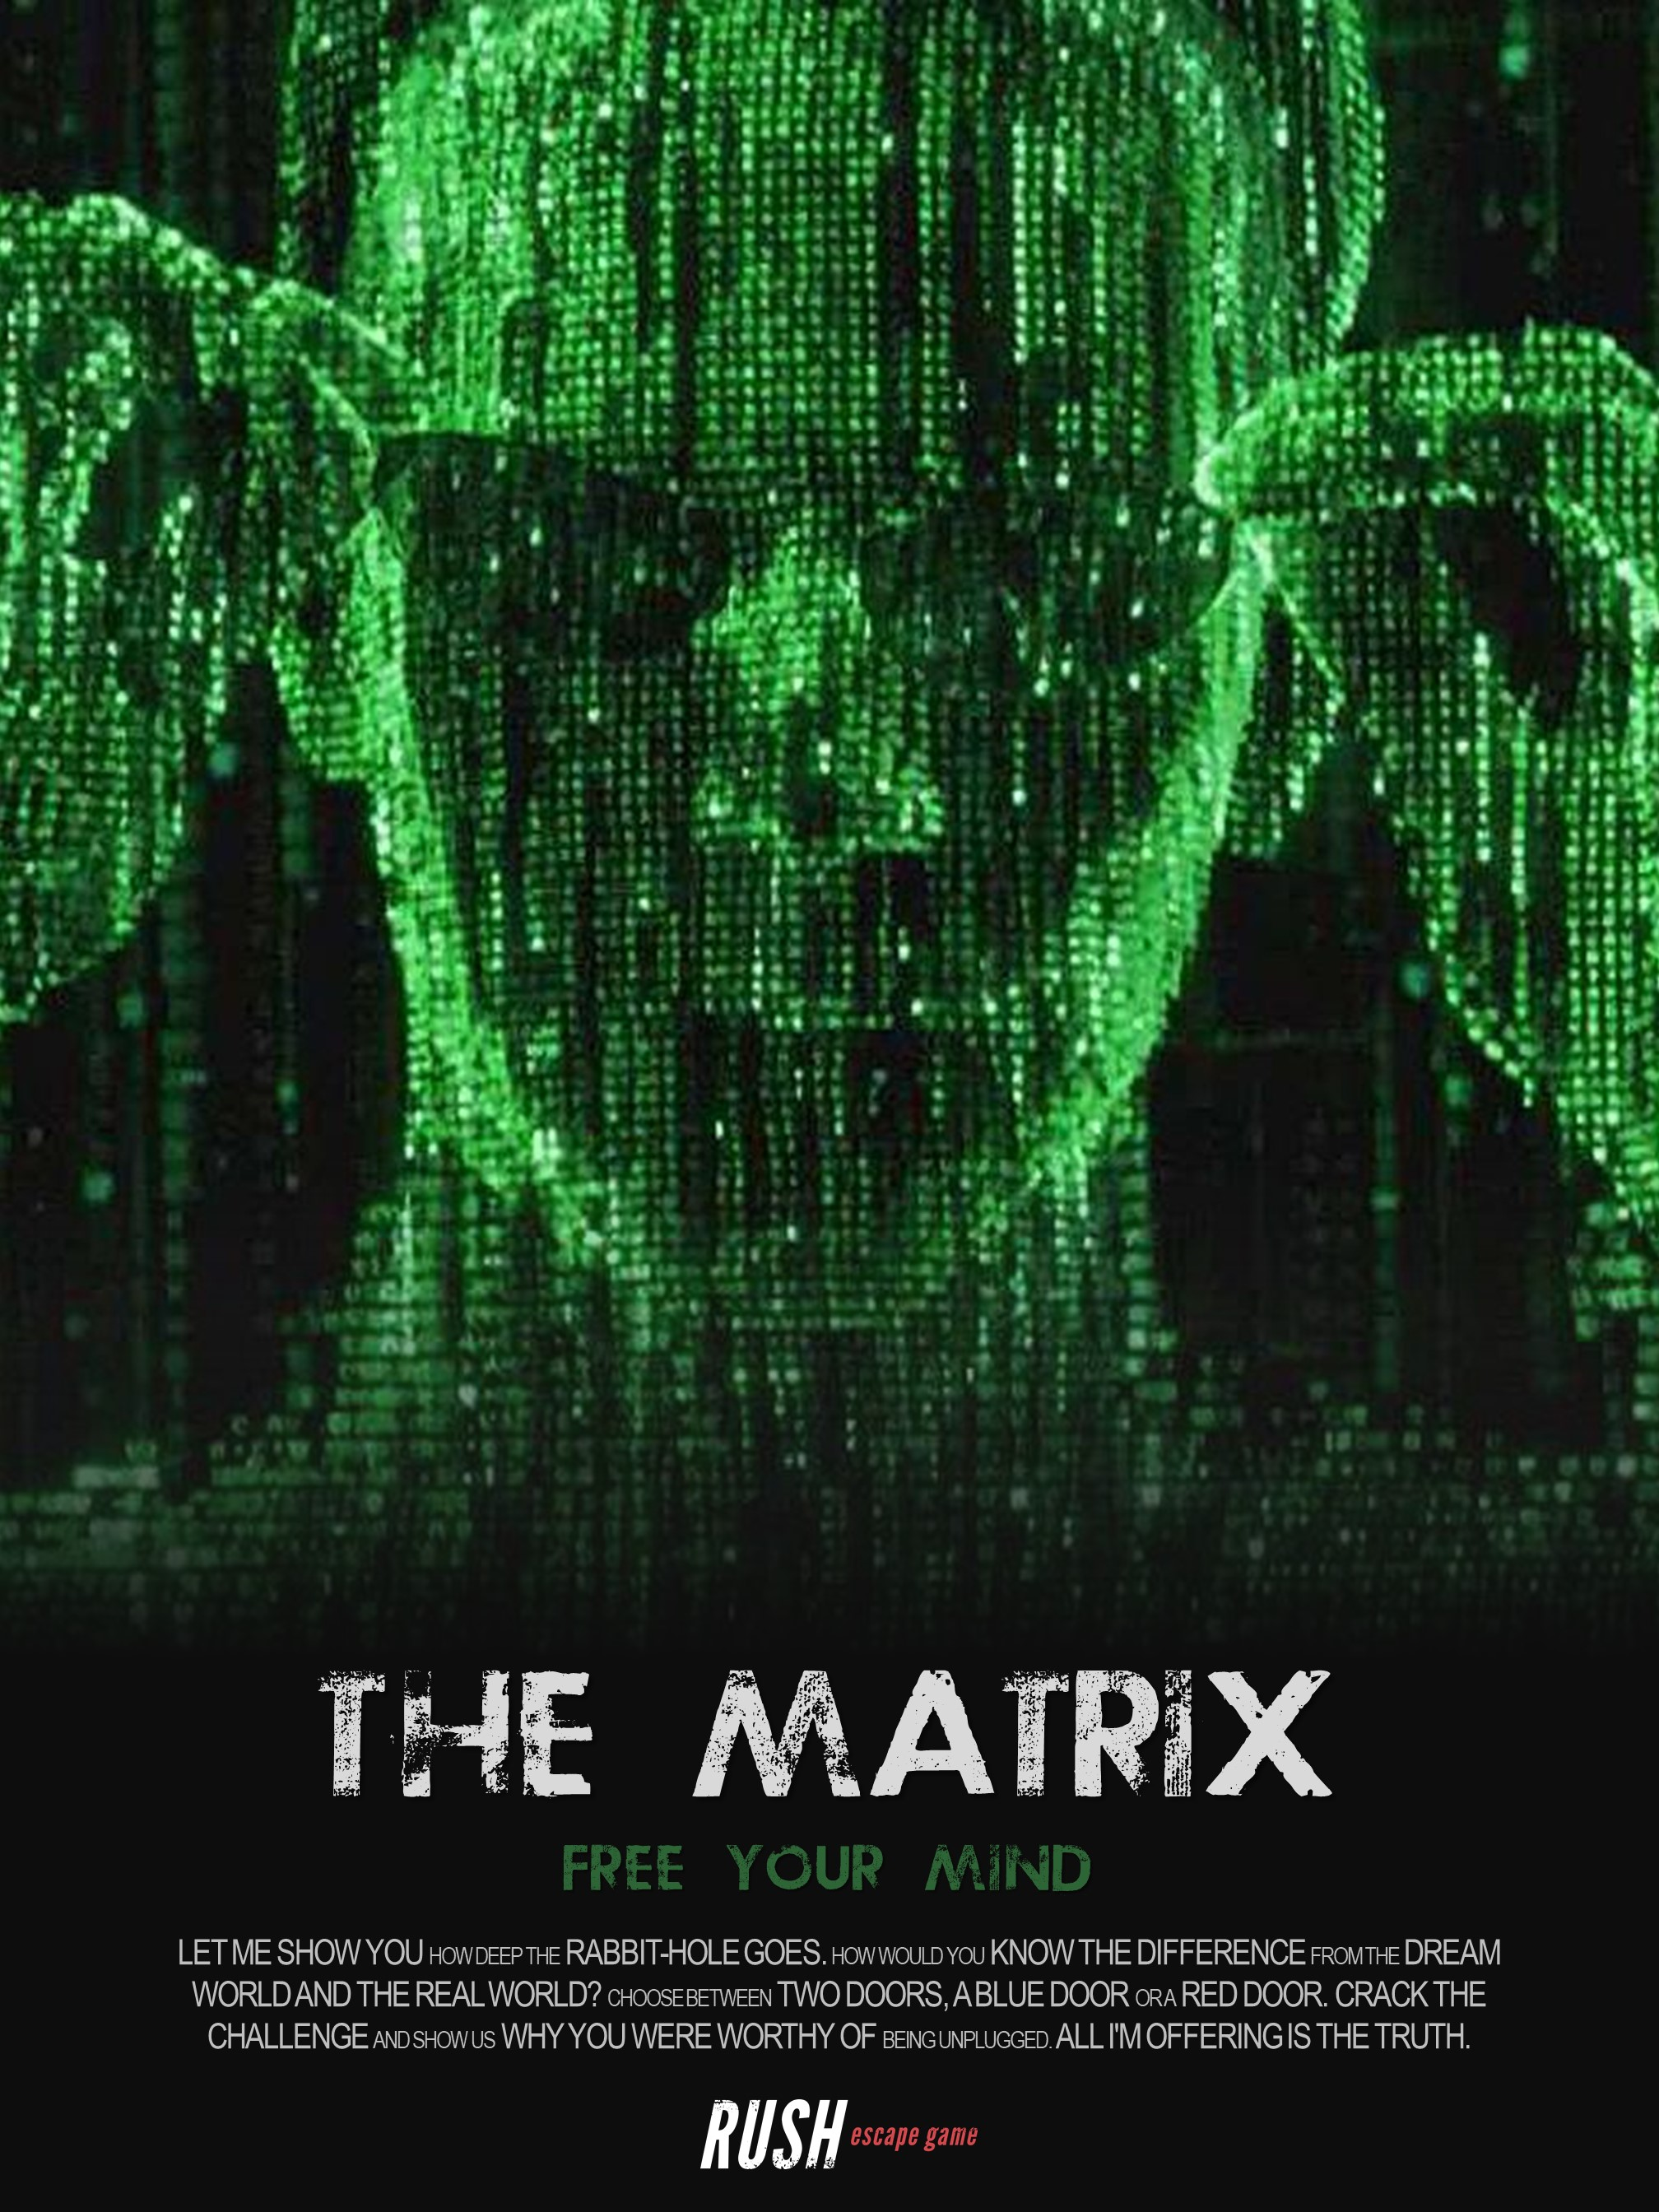 Escape Room Melbourne - Rush Escape Game - The Matrix.jpg